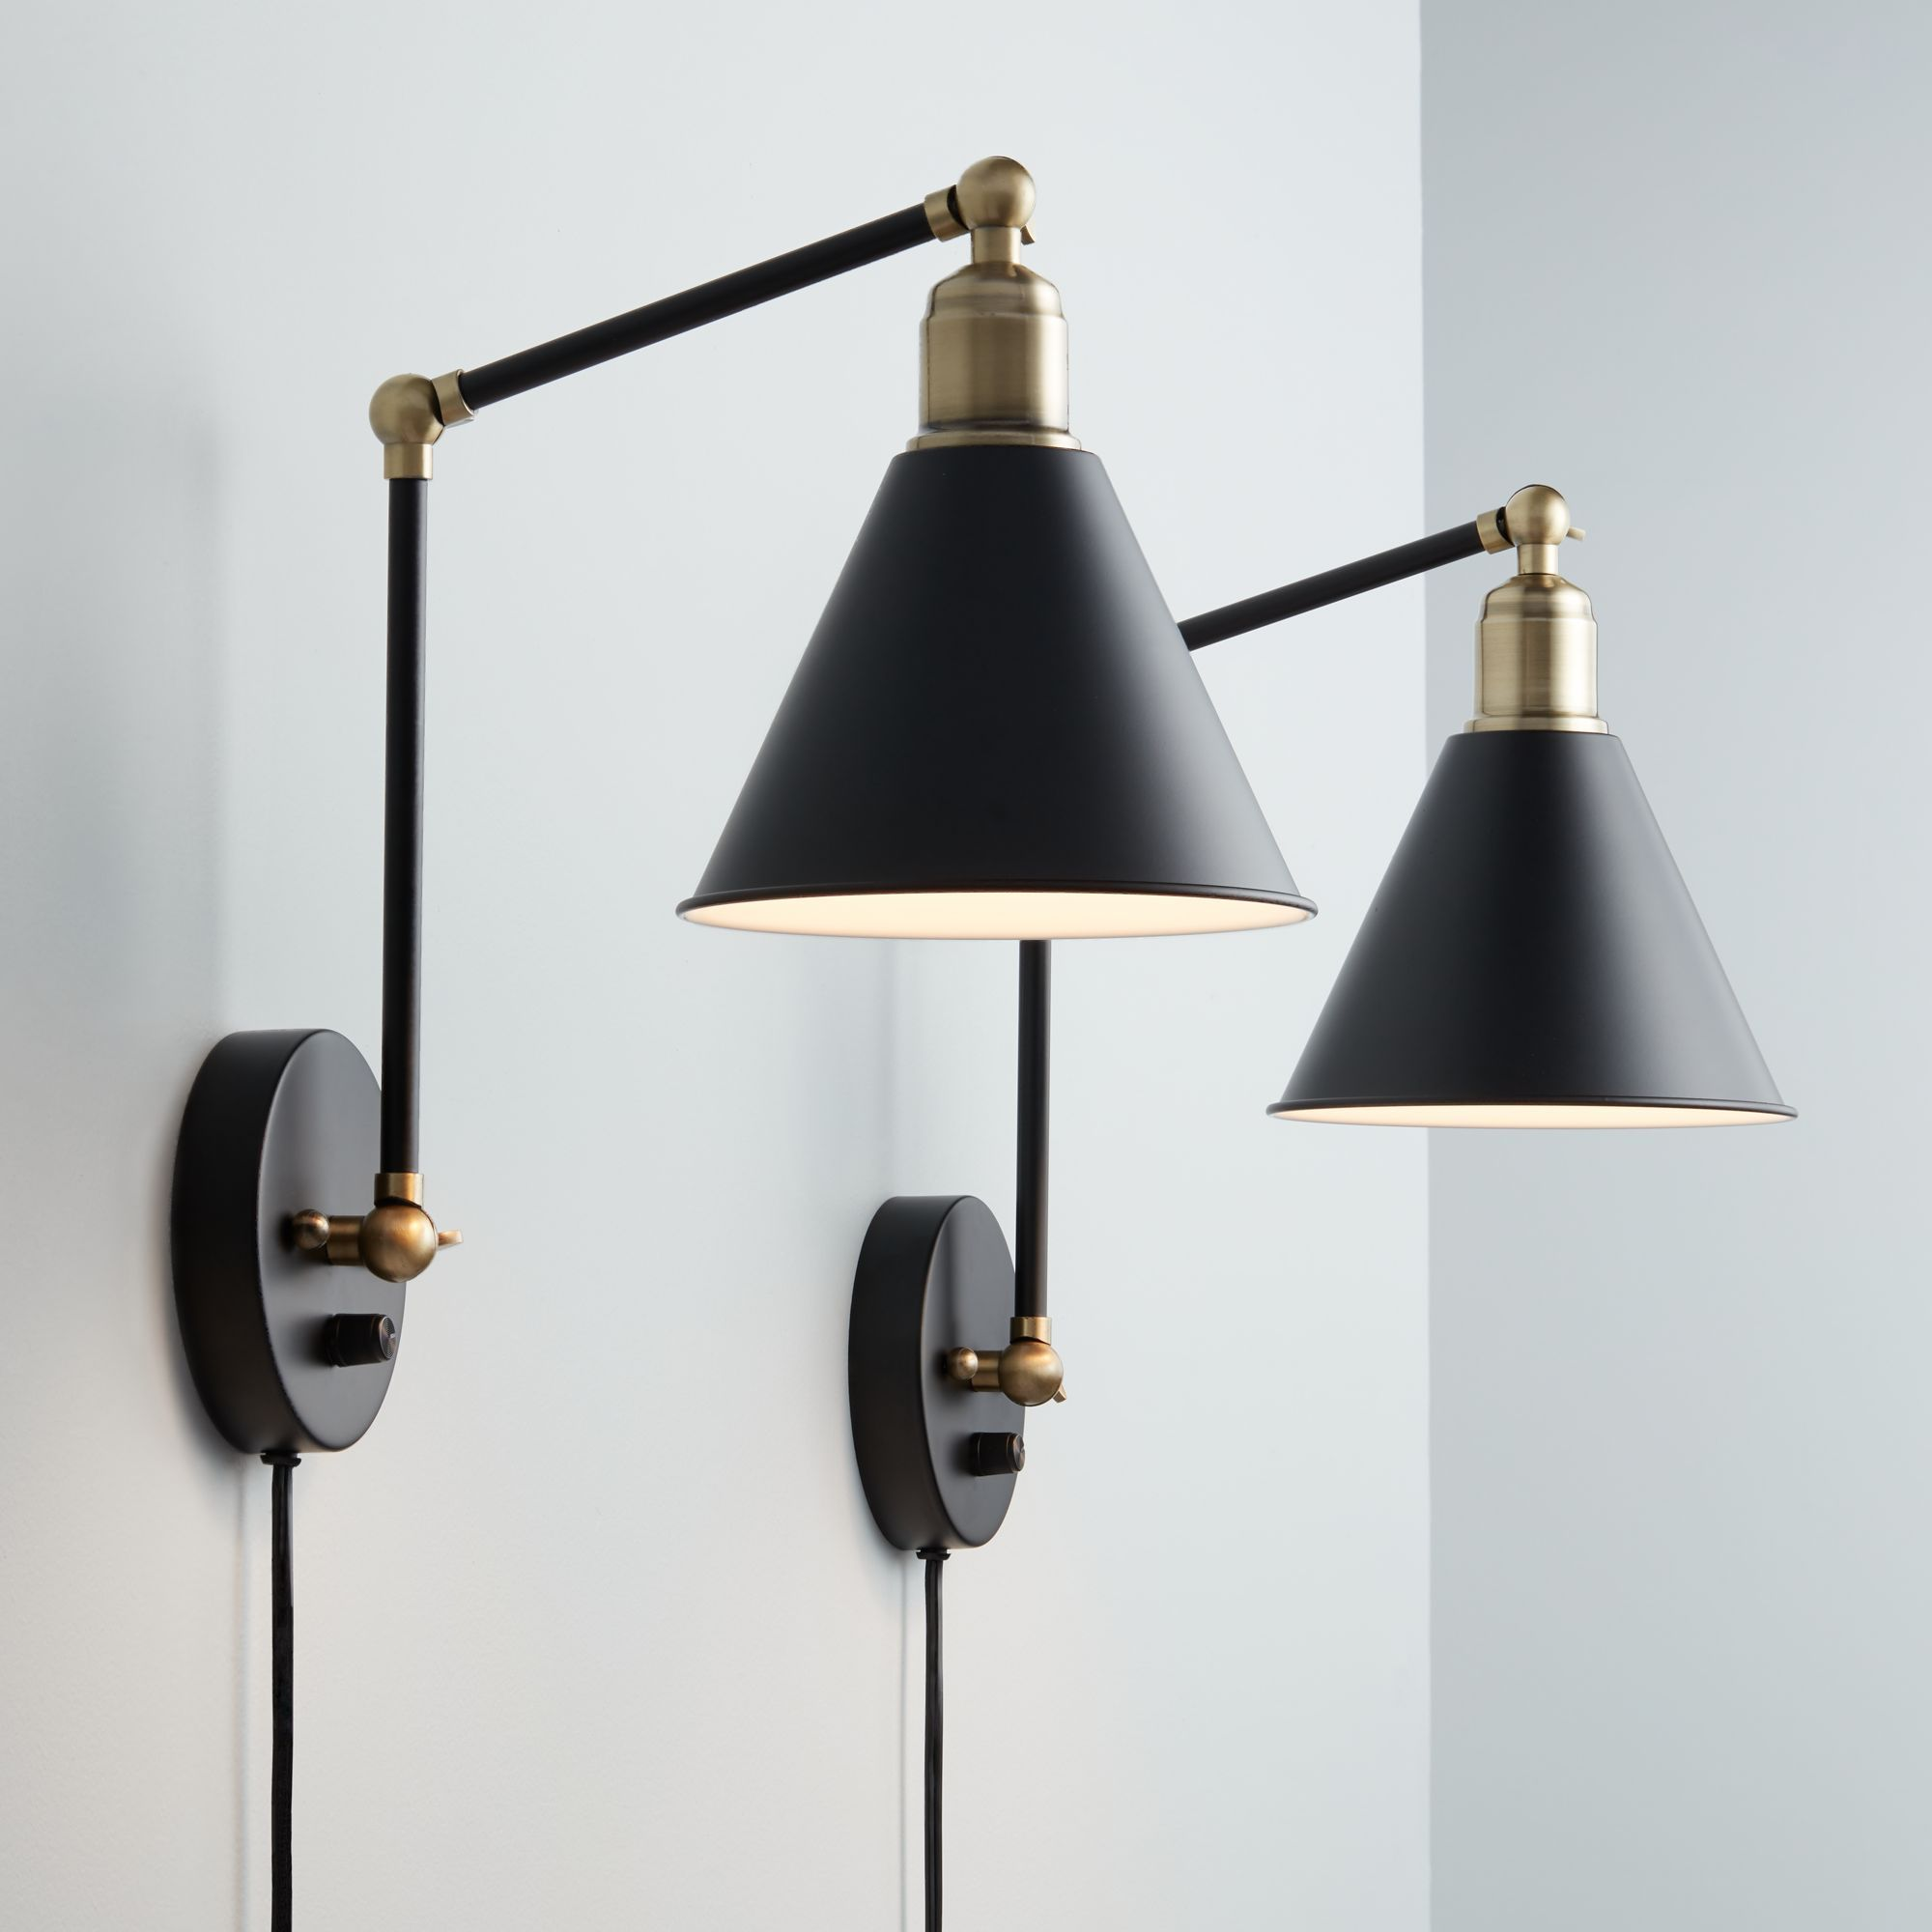 Free 2 Day Shipping Buy 360 Lighting Modern Wall Lamp Plug In Set Of 2 Black And Antique Brass For Bedr Plug In Wall Lamp Modern Wall Lamp Plug In Wall Sconce